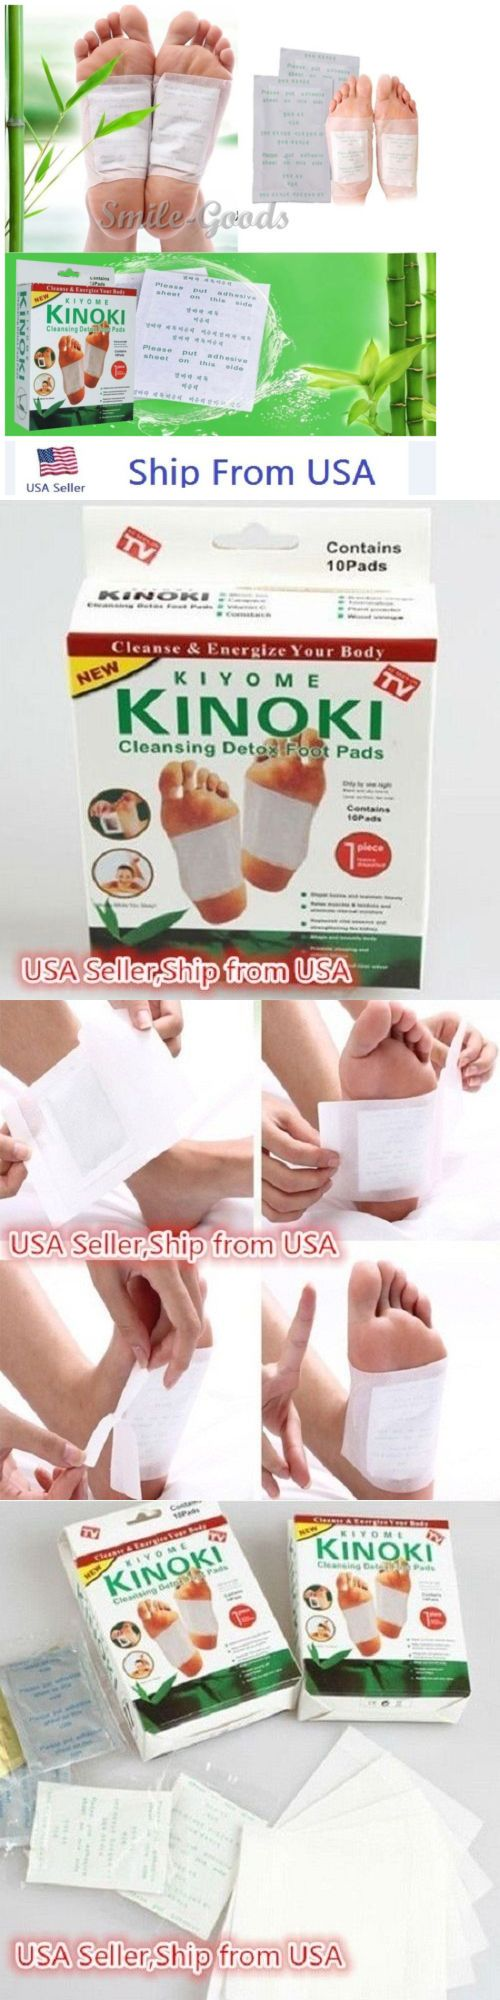 Detox Pads: Kinoki Herbal Detox Foot Pads Detoxification Cleansing Patches Usa Shipping BUY IT NOW ONLY: $105.33